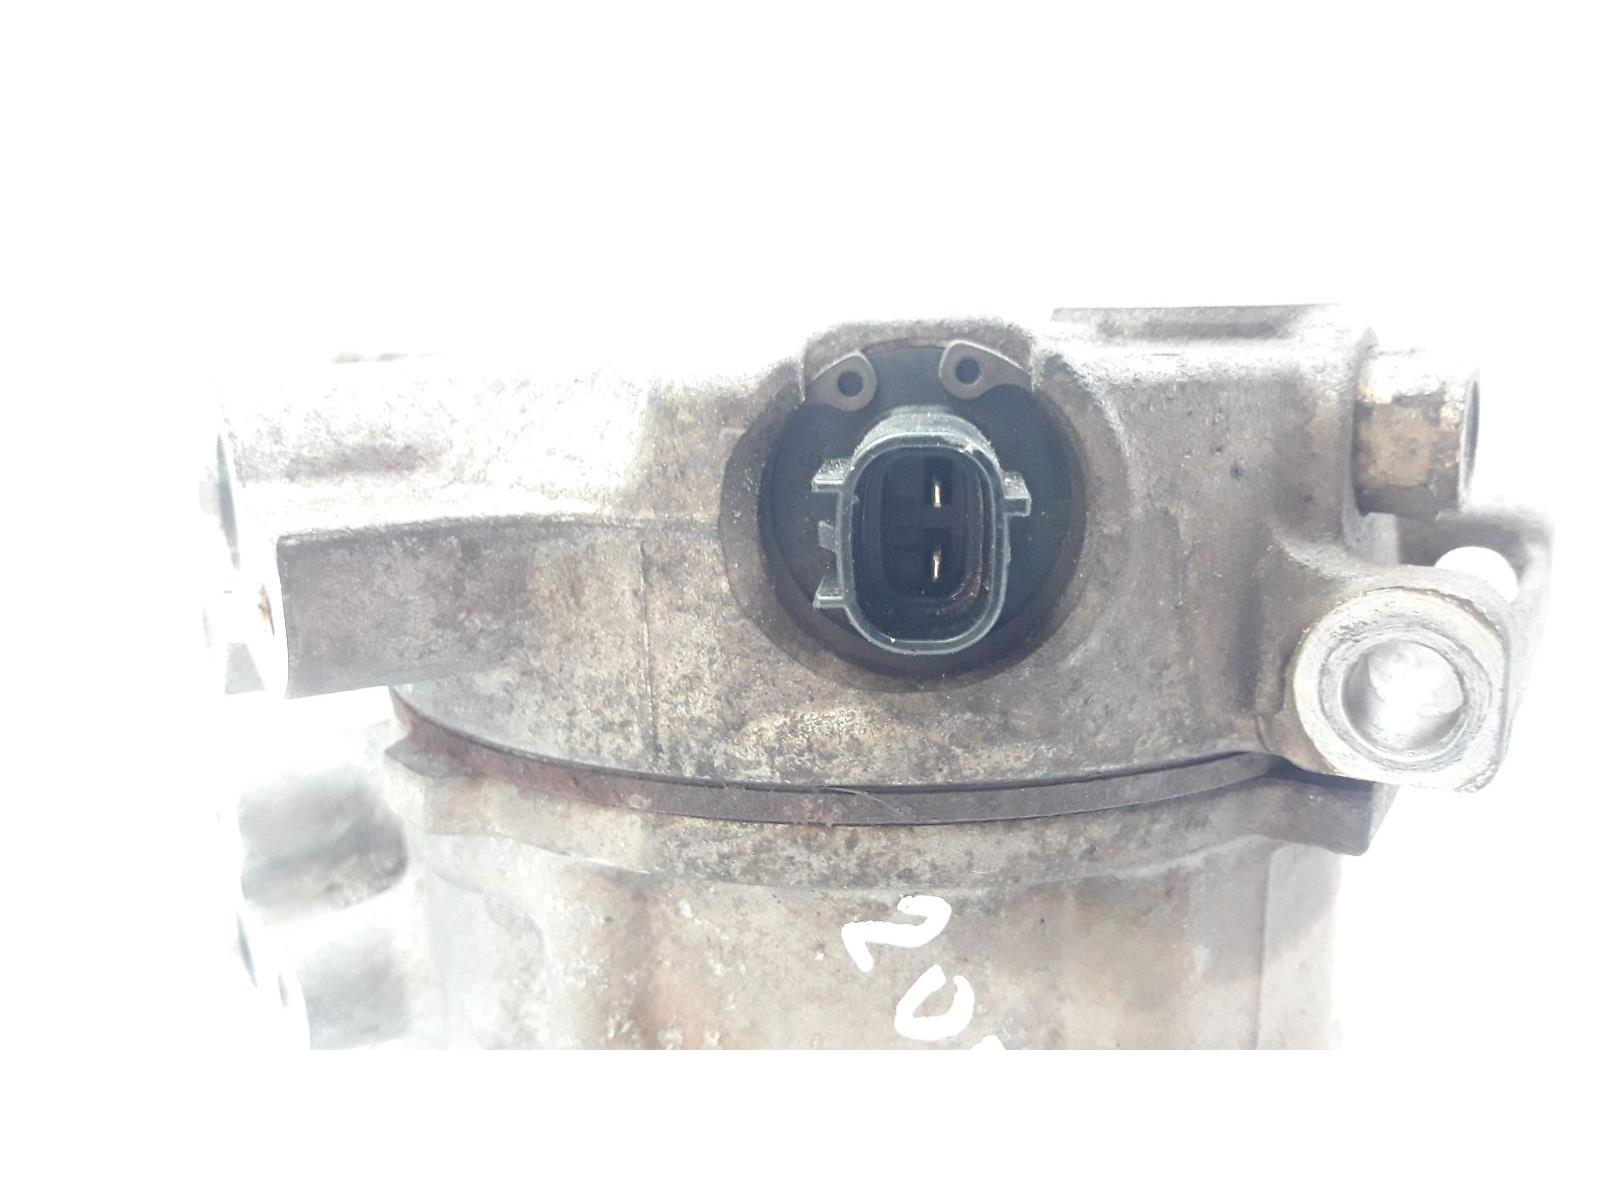 Lexus IS 2005 To 2010 Air Conditioning Compressor (Diesel / Manual